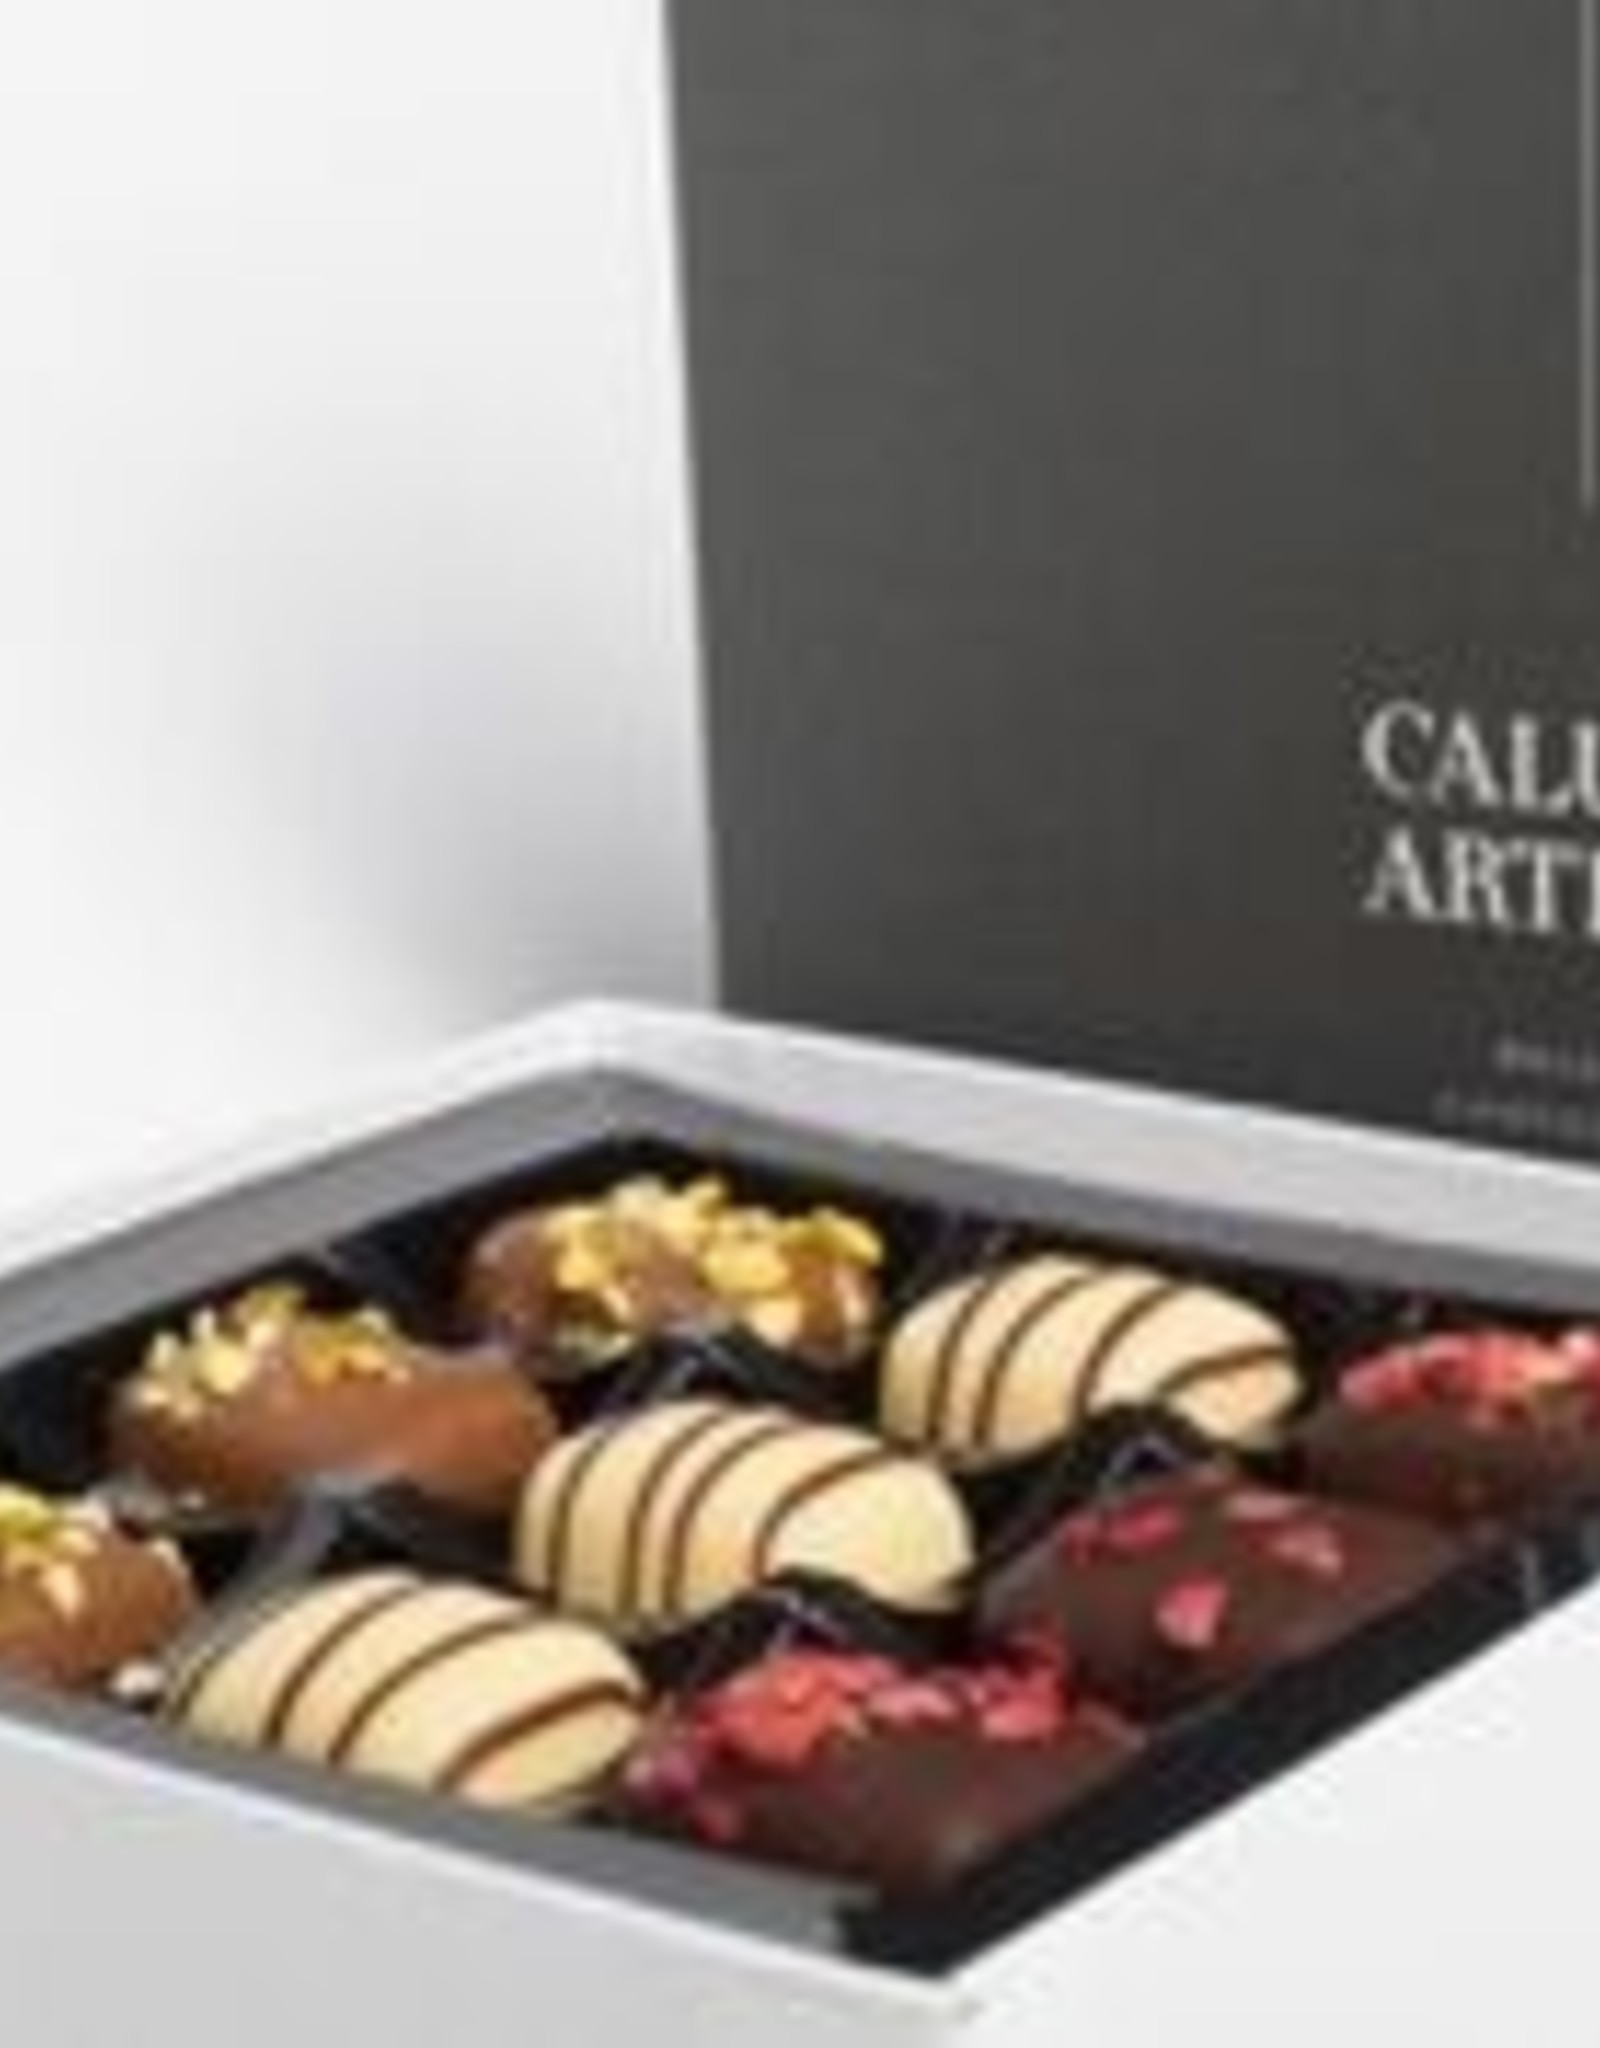 Caluwe Artisan Rigid box 125g - marsepein assortiment - UTZ